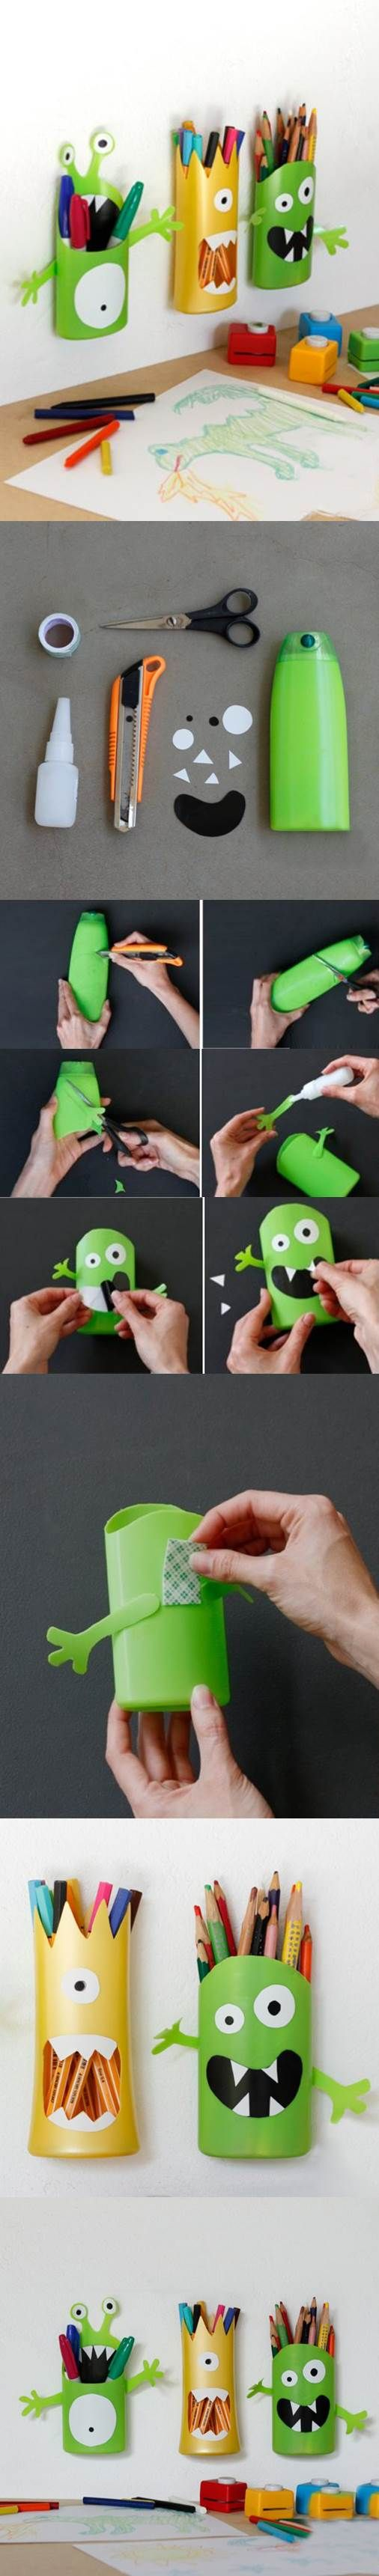 Diy funny pen holder from plastic bottle icreativeideas like diy funny pen holder from plastic bottle icreativeideas like us on facebook facebook do it yourself pinterest reciclaje solutioingenieria Choice Image